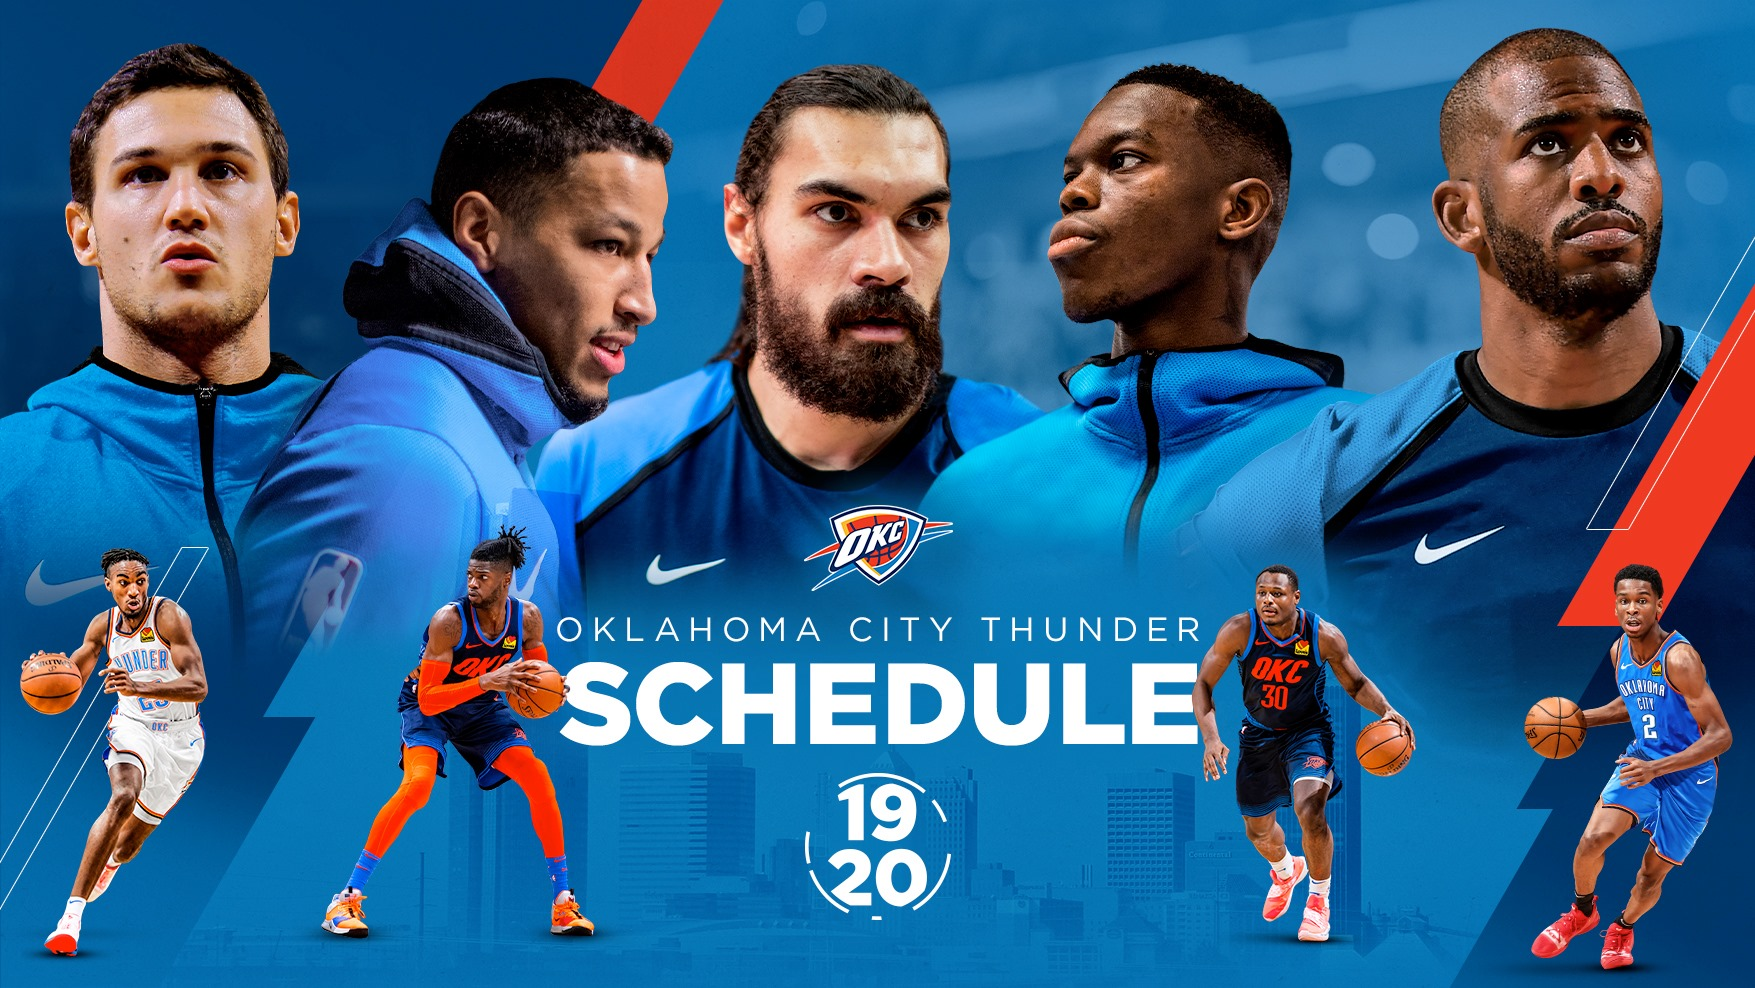 image regarding Okc Thunder Printable Schedule named Okc Thunder Timetable 2020 Program 2020